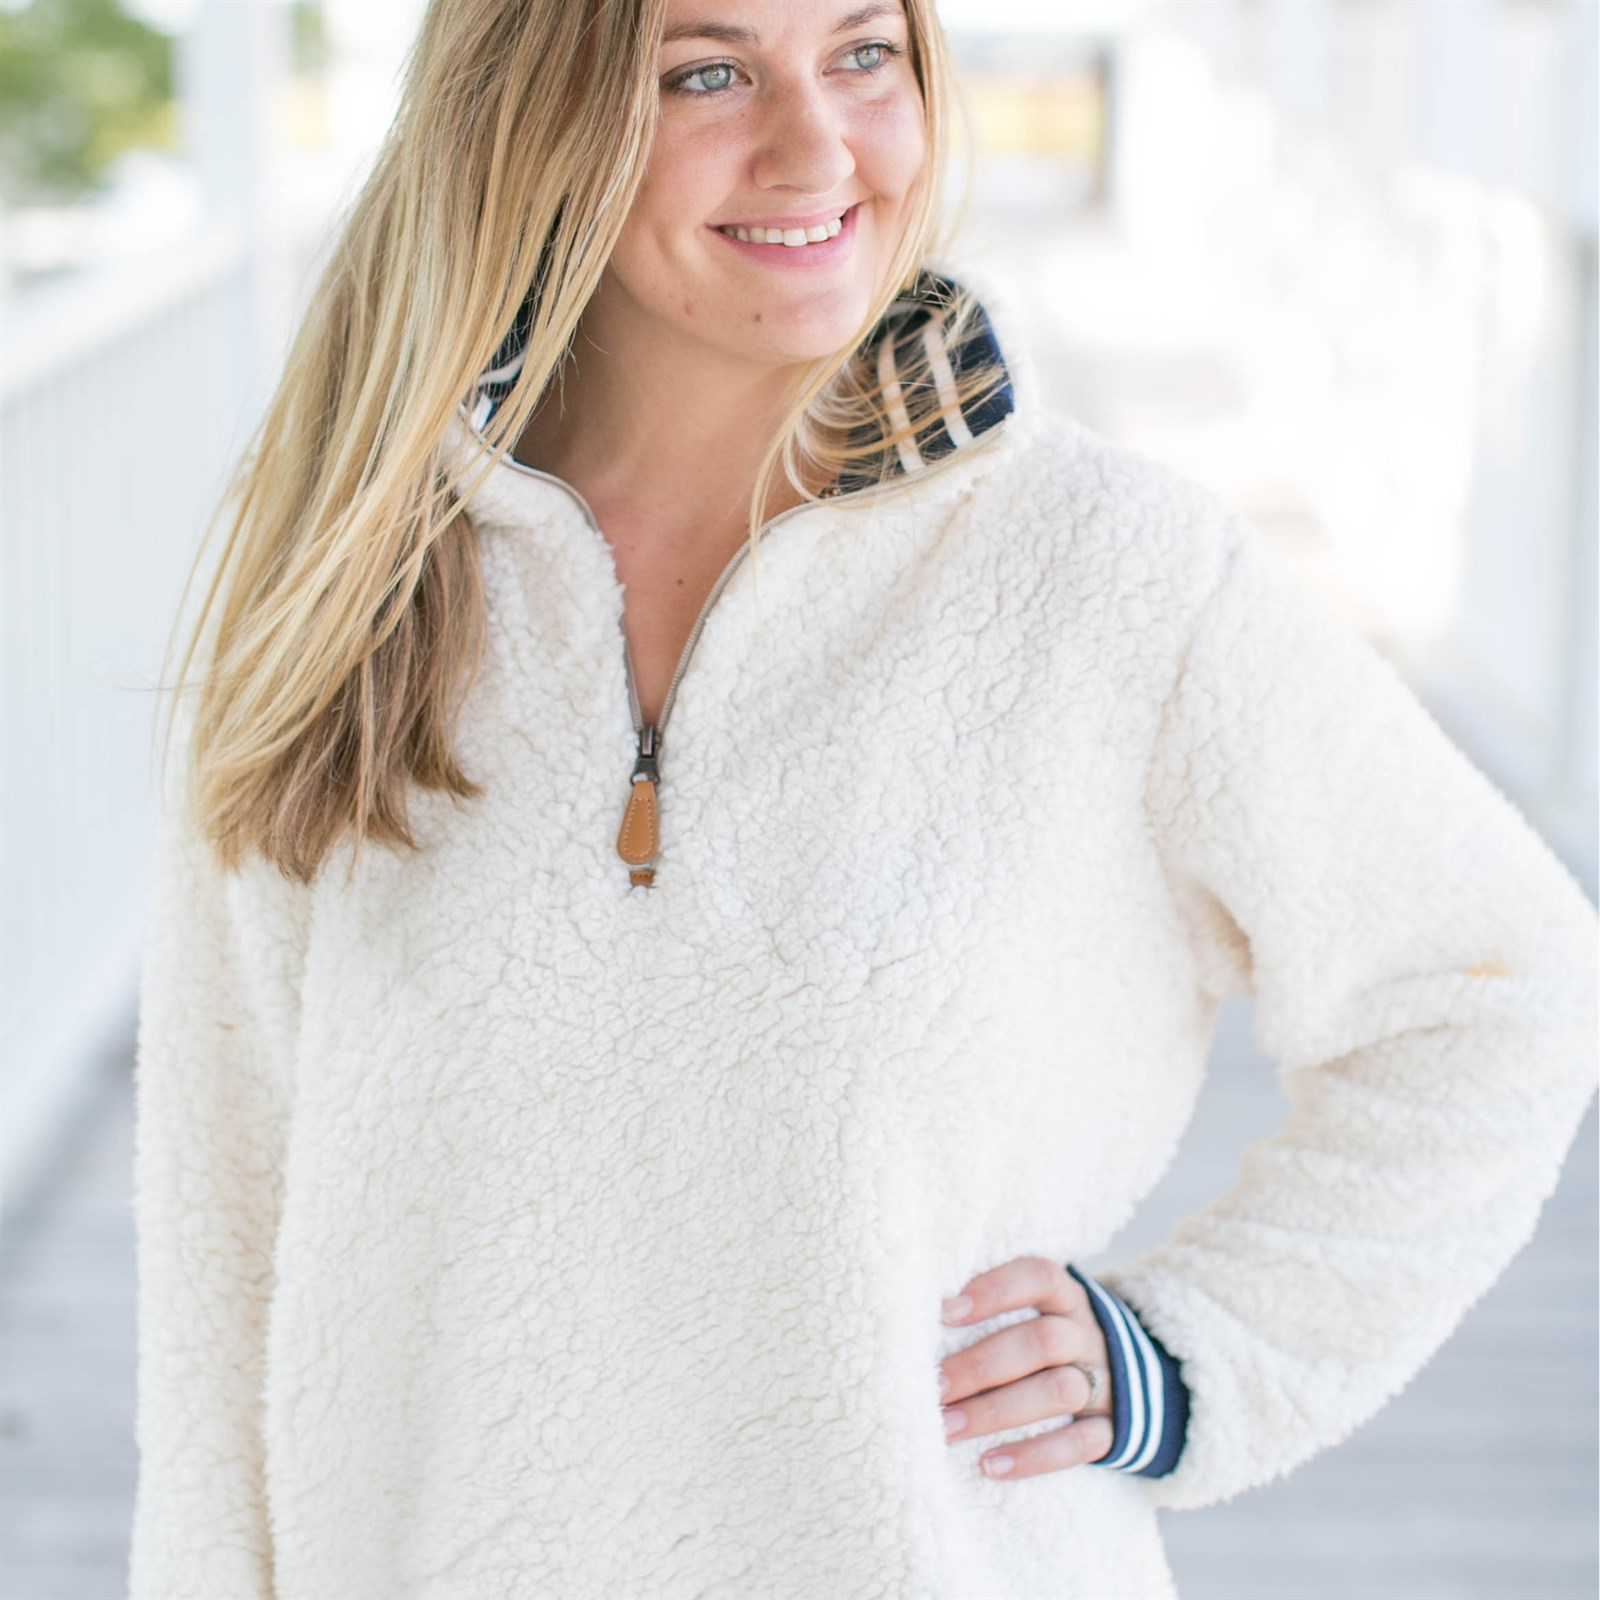 Women's Varsity Sherpa Pullover Now $28.99 w/ Free Shipping